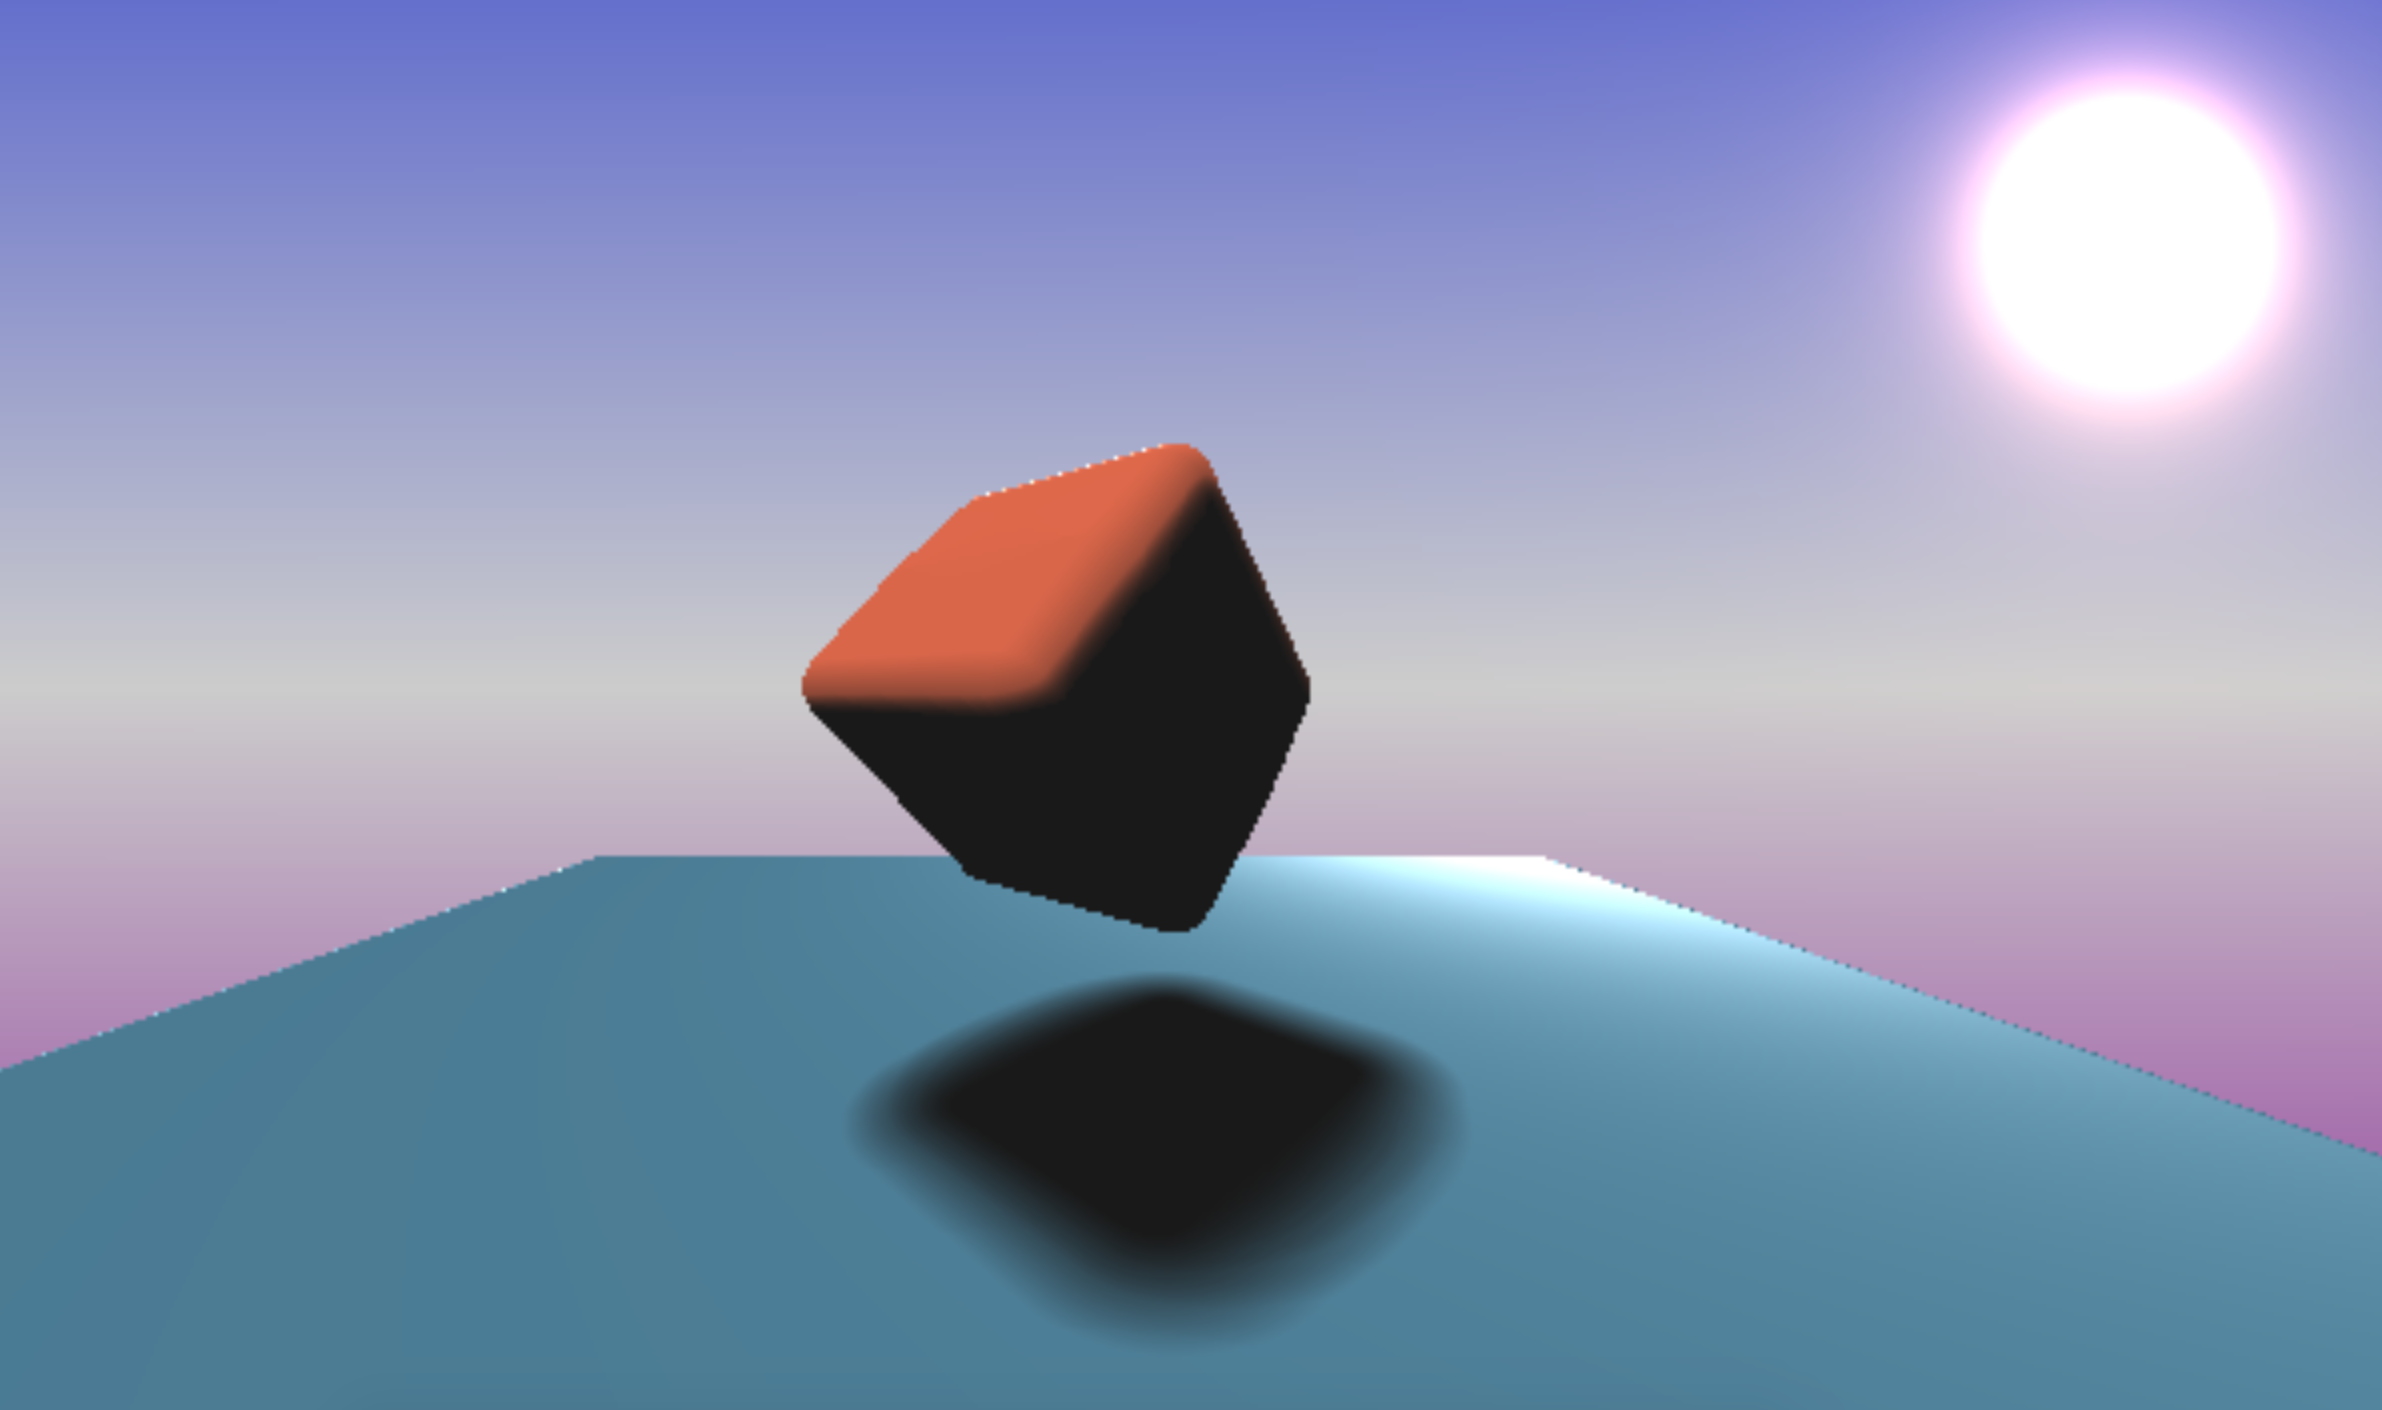 Ray Marching Soft Shadows